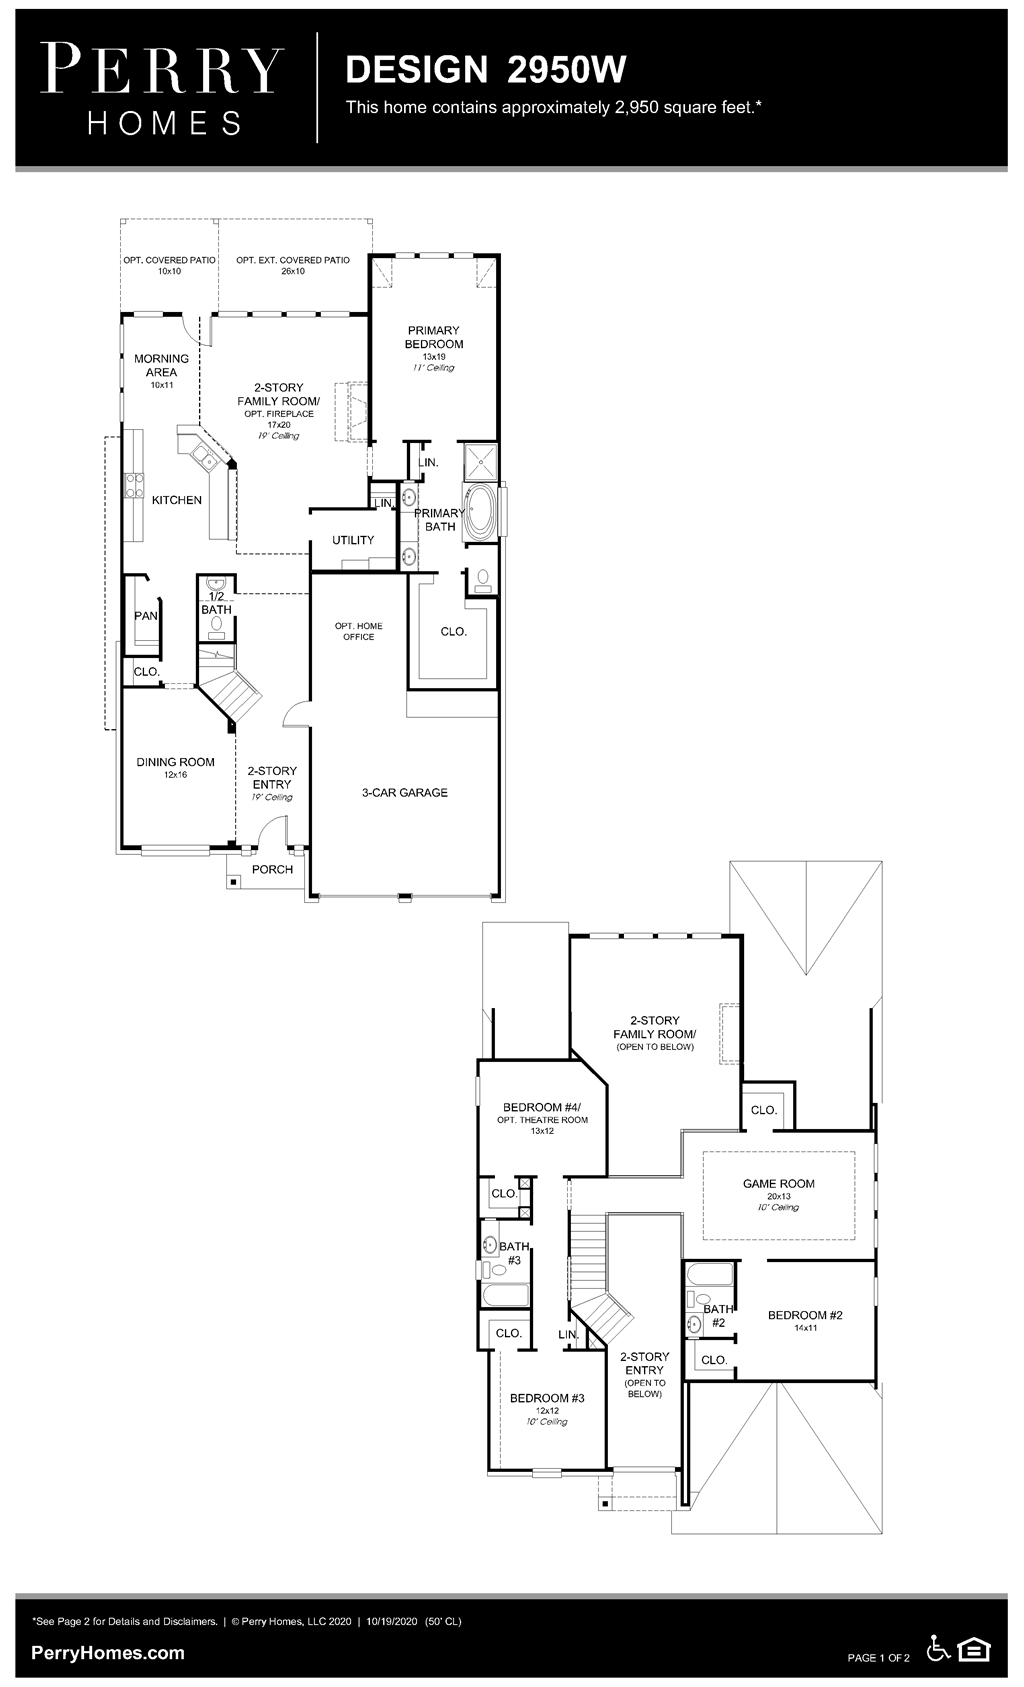 Floor Plan for 2950W